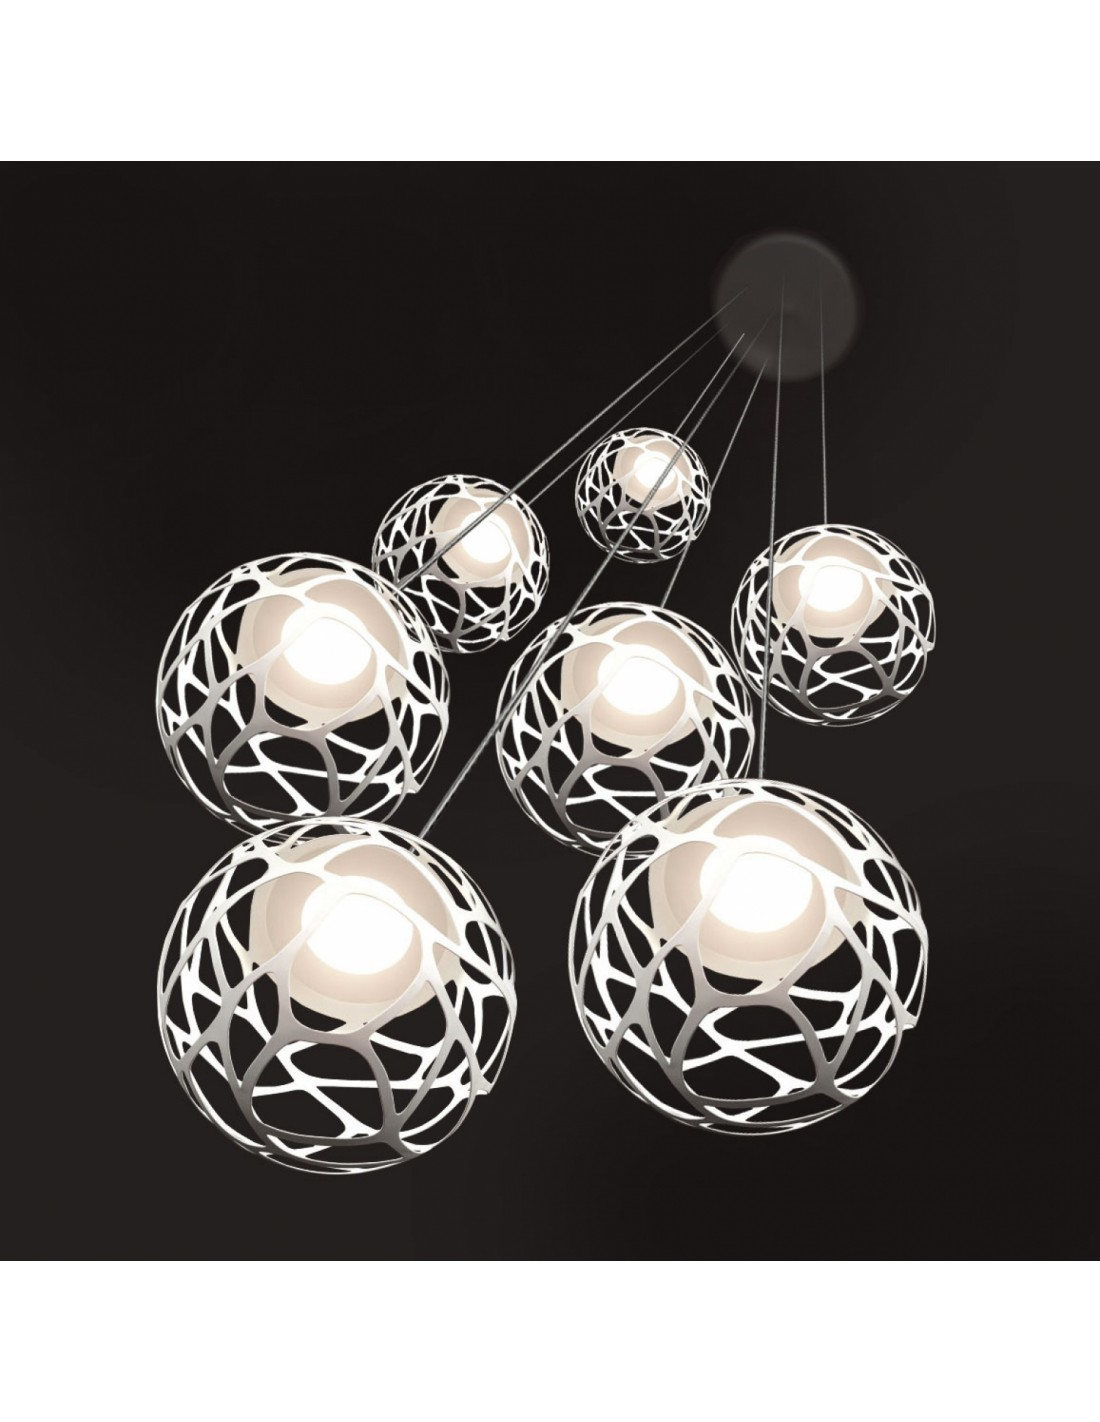 suspension multiple kelly cluster 7 spheres so3. Black Bedroom Furniture Sets. Home Design Ideas